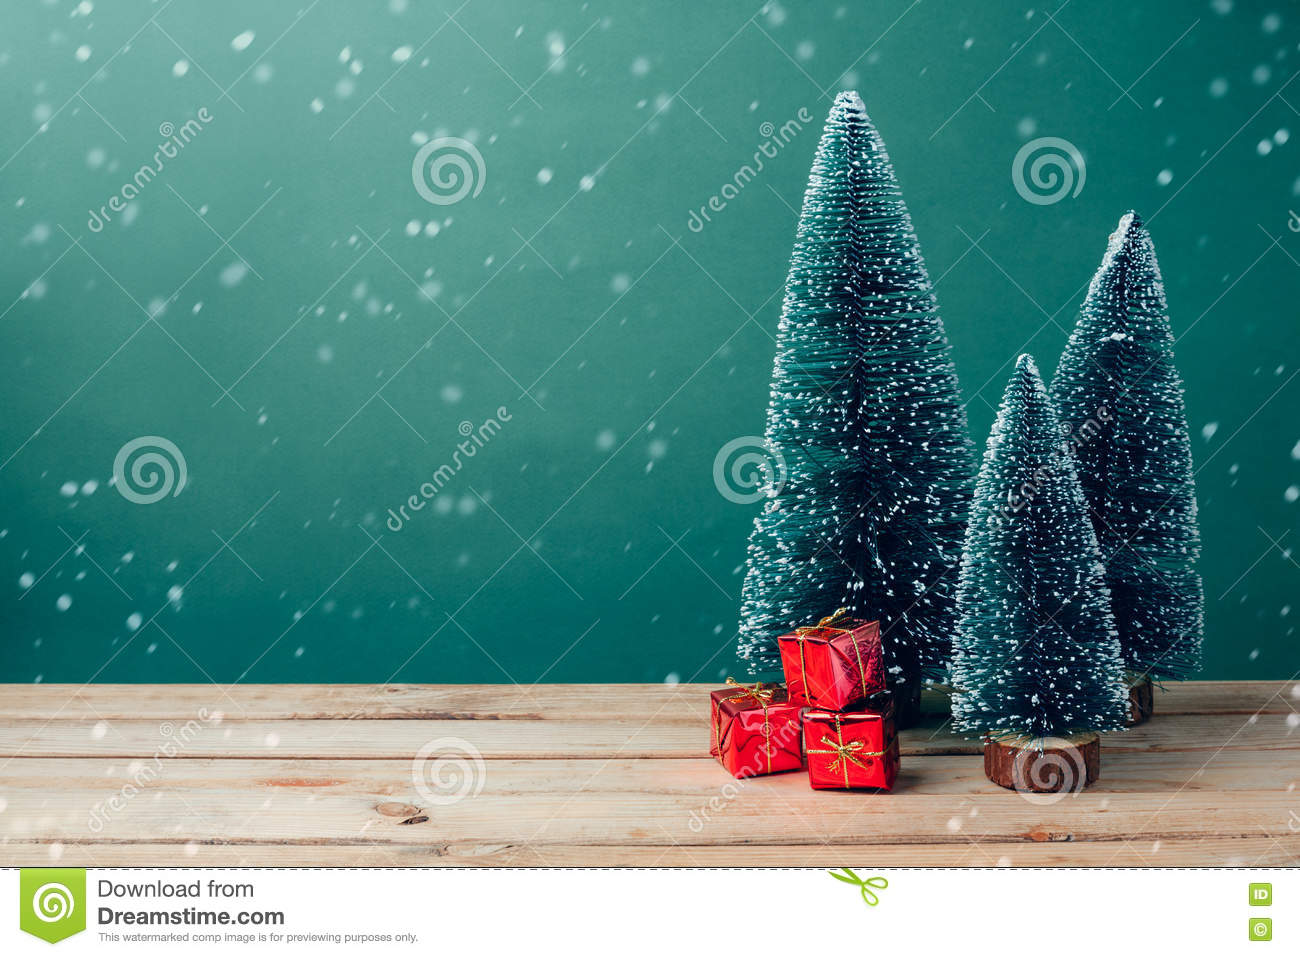 Christmas gift boxes under pine tree on wooden table over green background